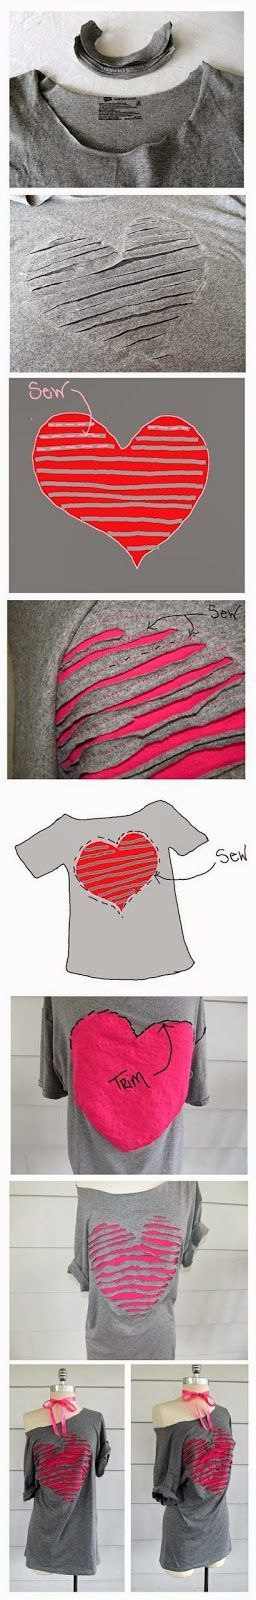 Recycling Old t-shirt remake As you see, you can easily renew your T-shirt. Just mark the shape you want over the cloth and cut parts o...